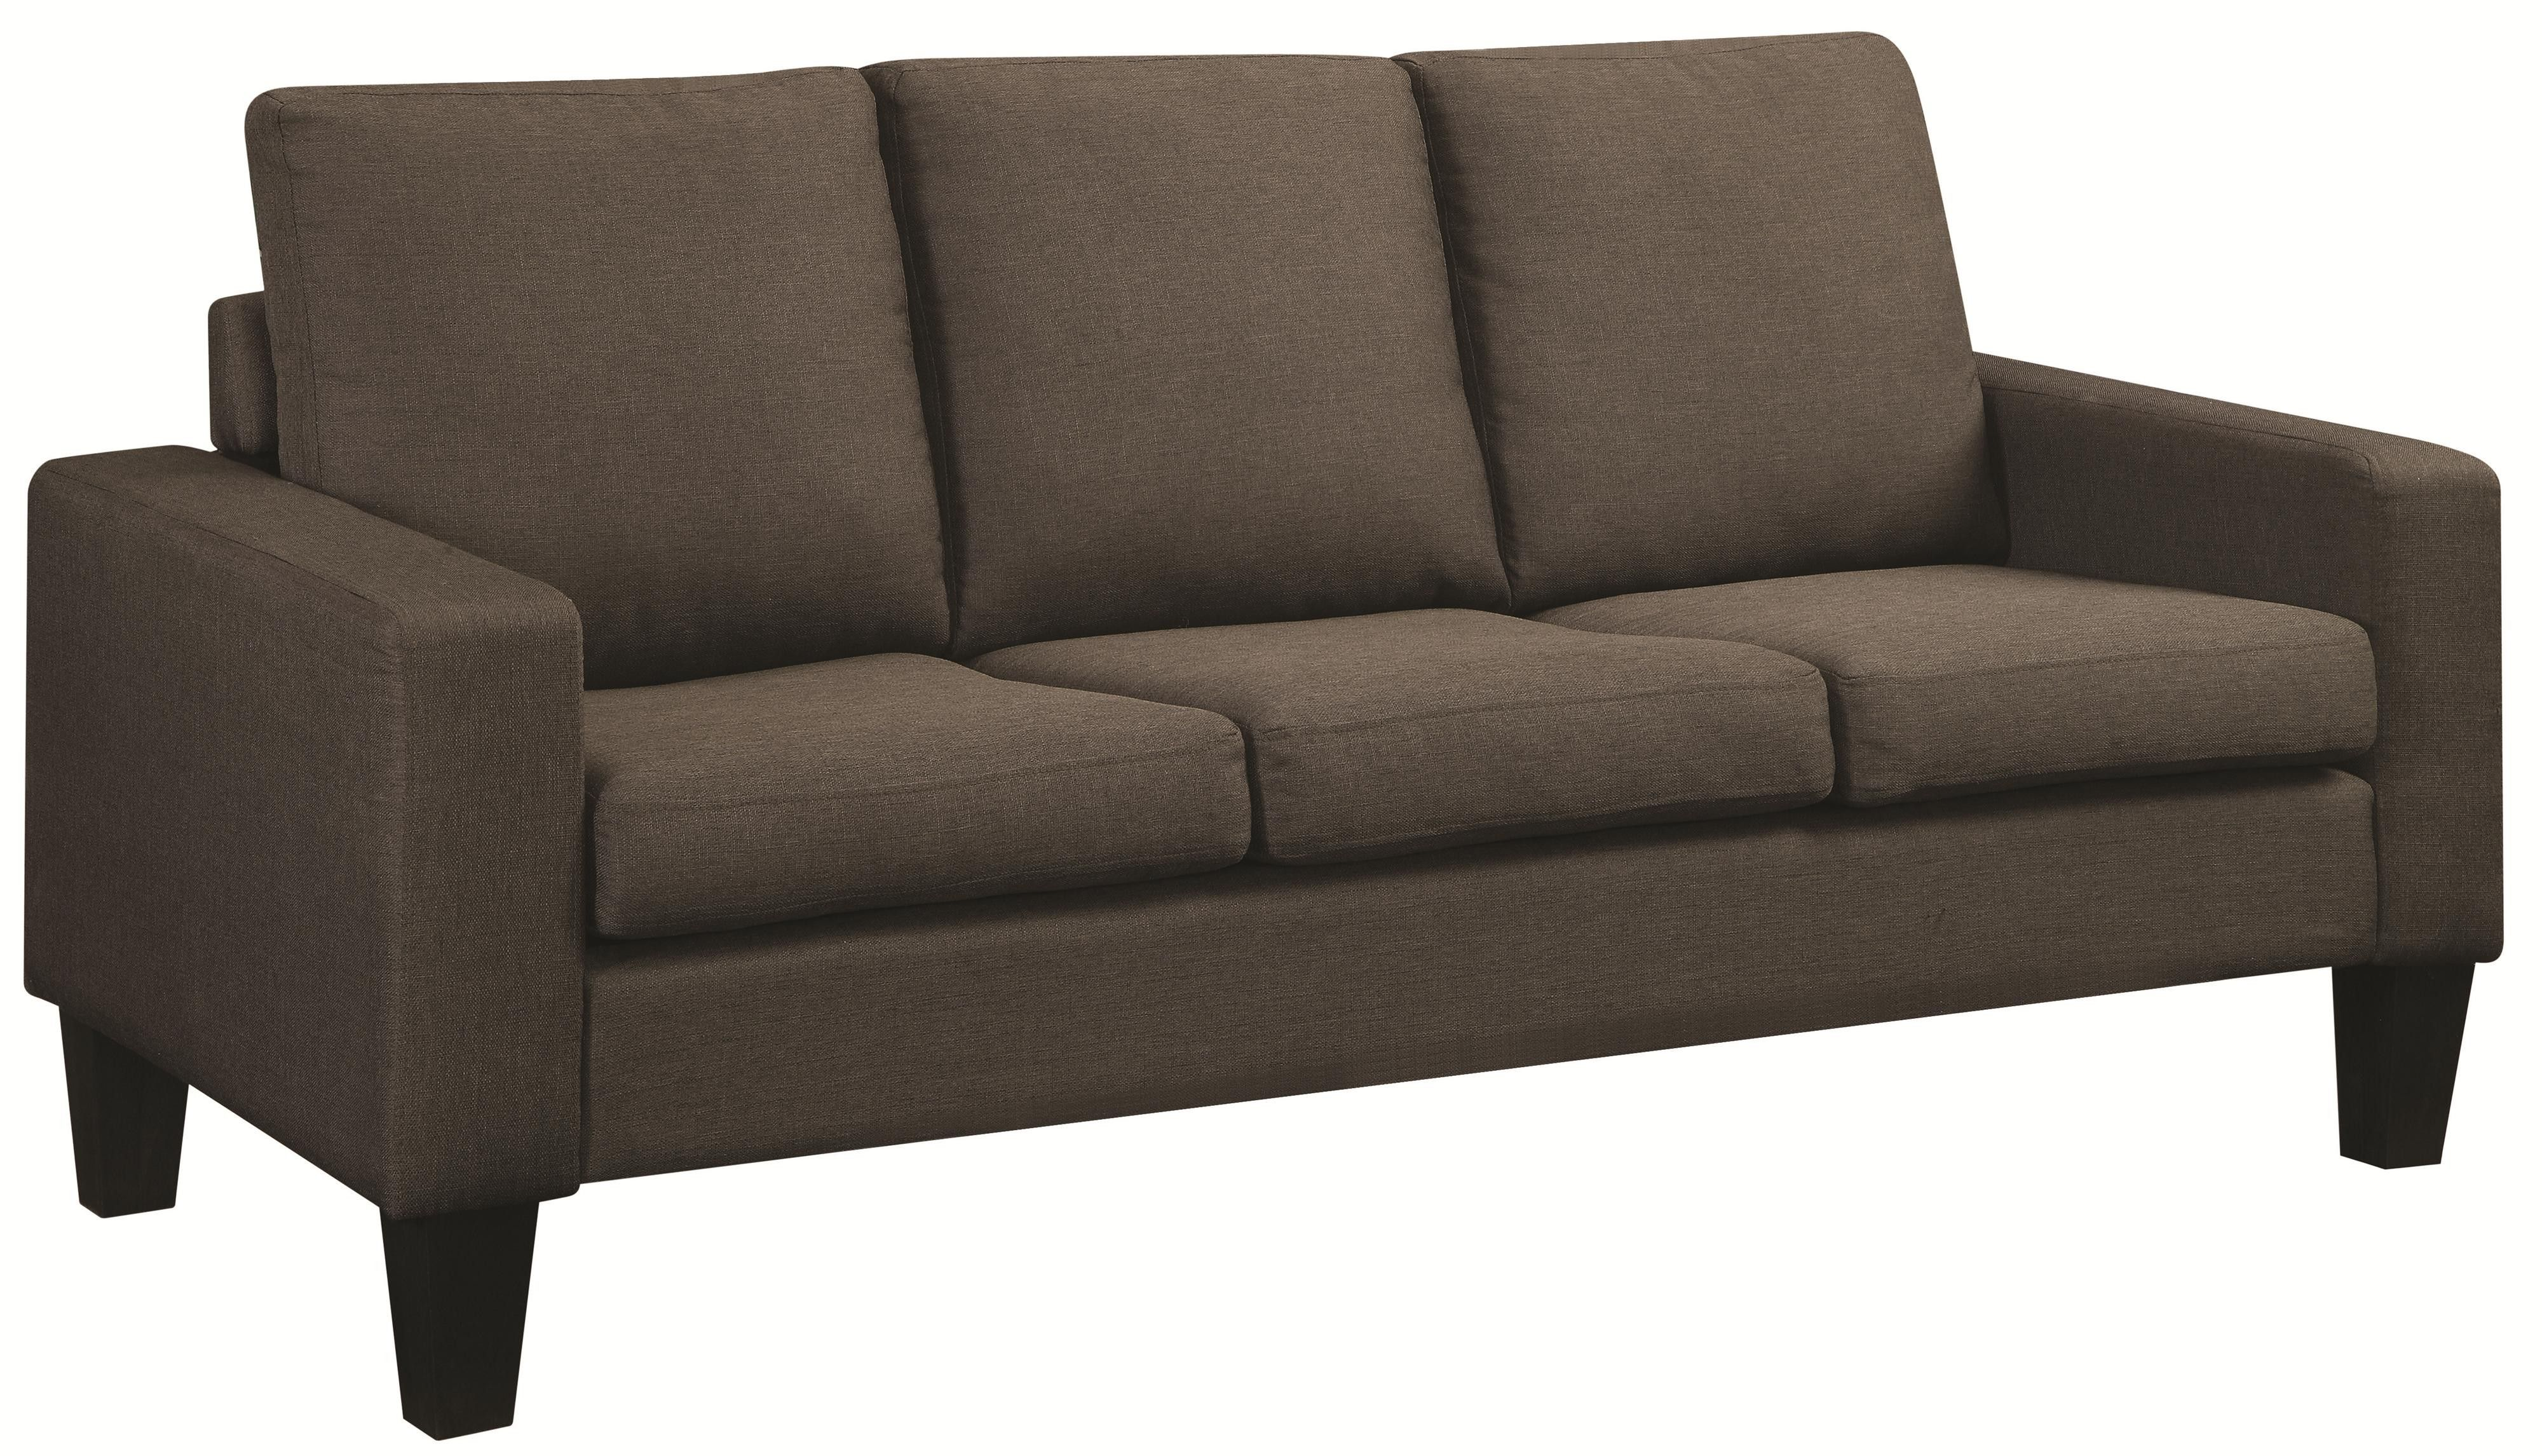 One In Stock Bach Grey Sofa 76 75 W X 35 75 D X 34 25 Rent 51 Buy 249 Furniture Sofa Upholstery Sofa